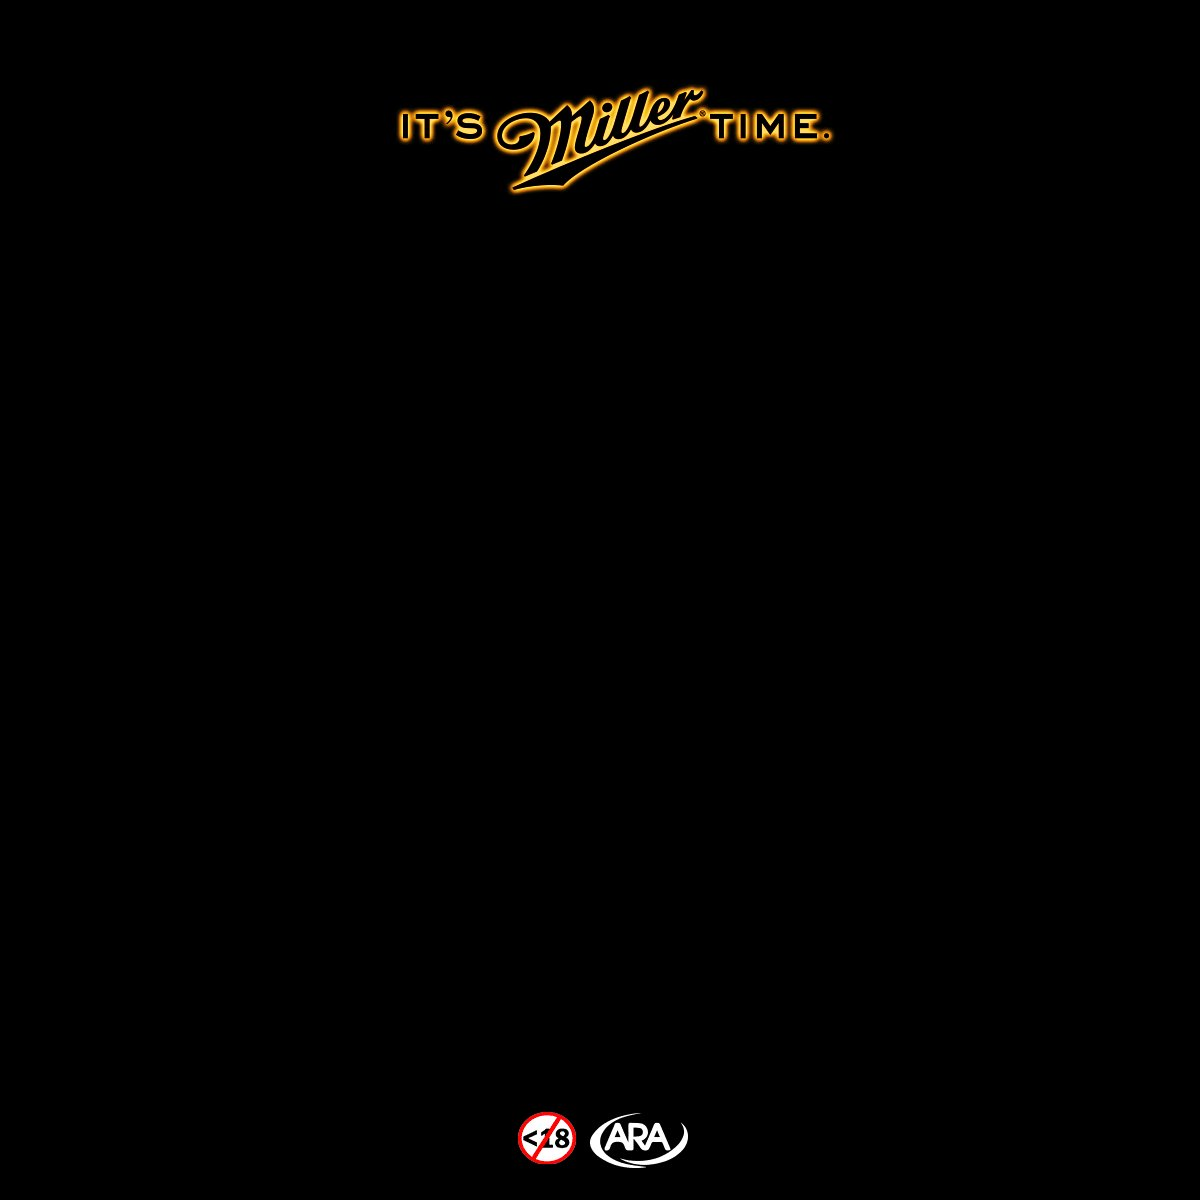 It's about that time famo! RT and we could hook you up! T&Cs Apply https://t.co/GcyeUnWUuL #ItsMillerTime https://t.co/Oru6tl96Cu